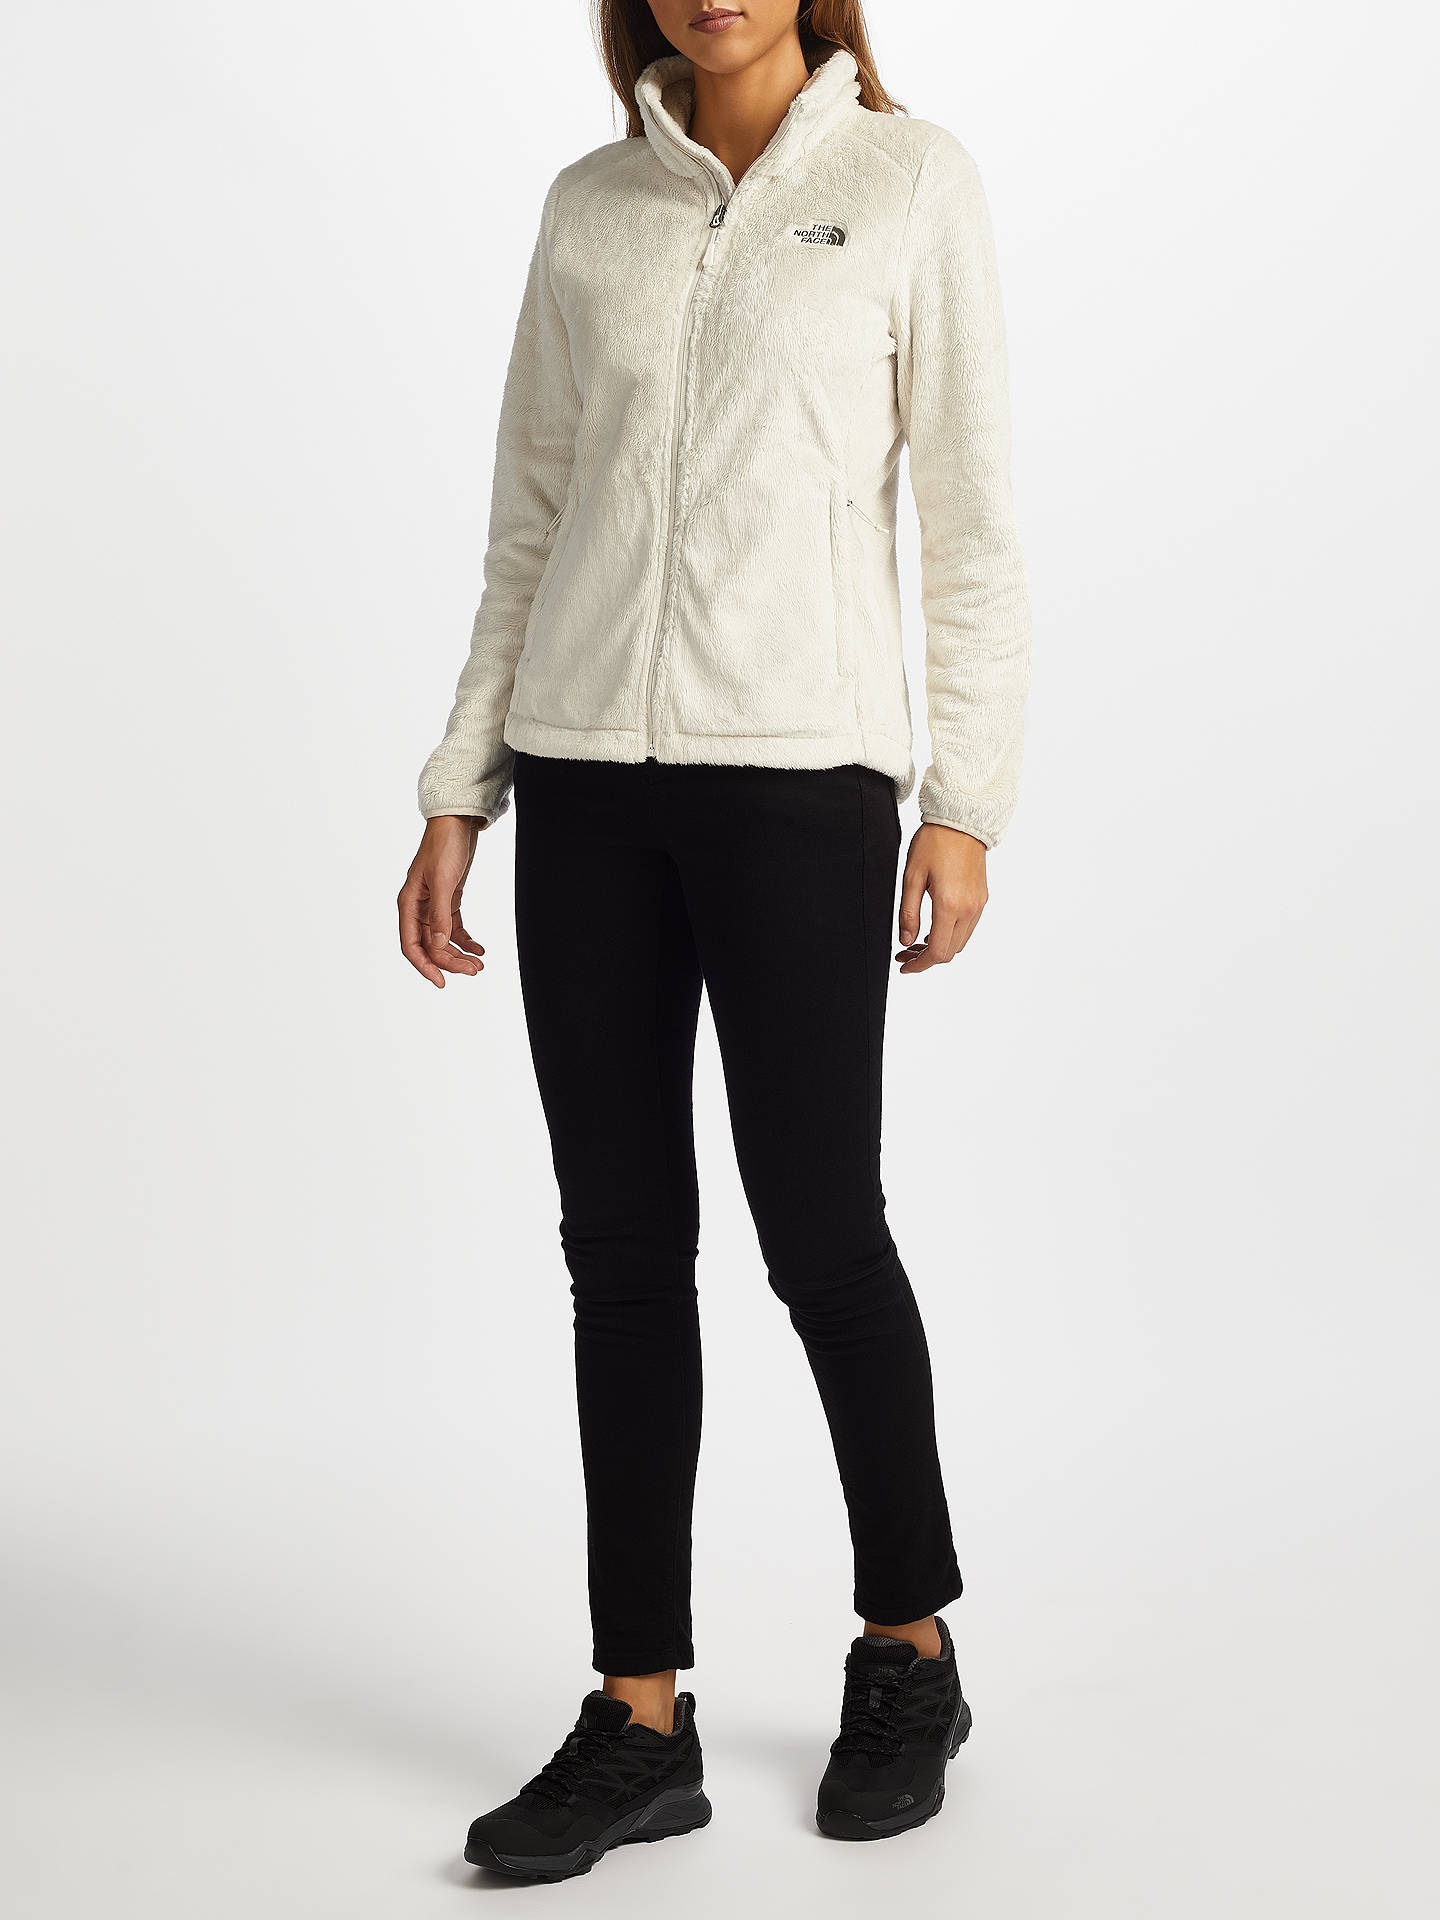 b1728c65e The North Face Osito 2 Women's Fleece Jacket, White at John Lewis ...